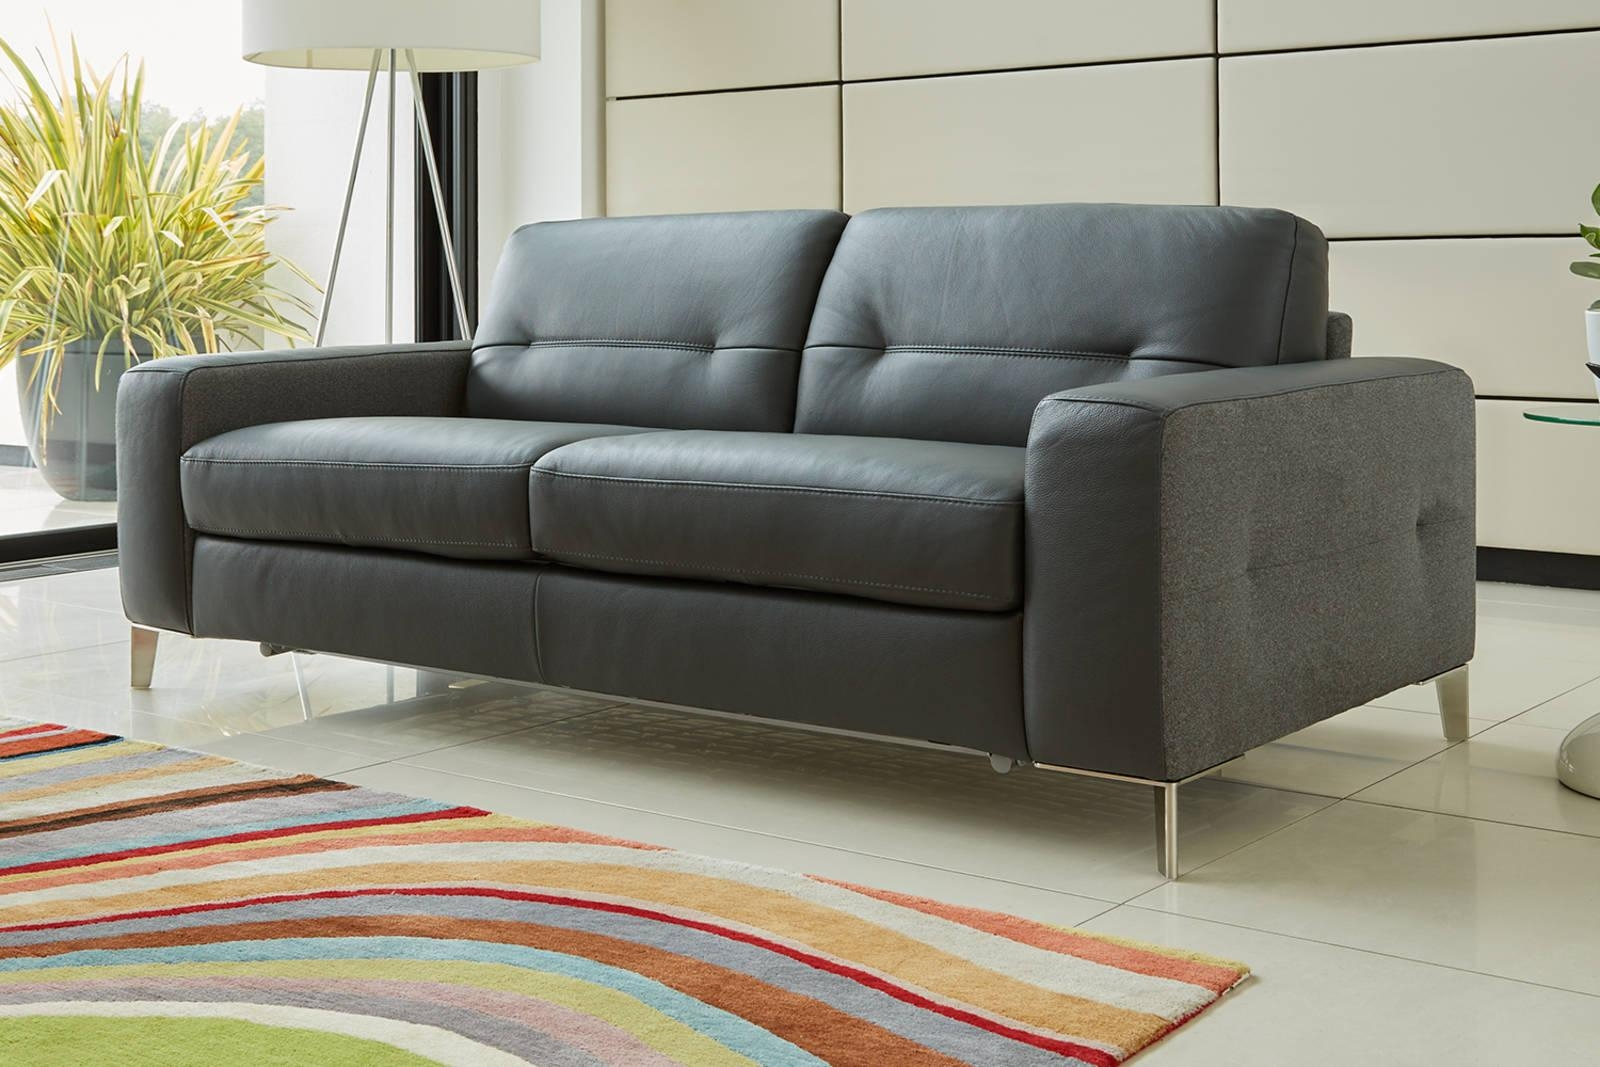 Florence | Sofology Intended For Florence Sofas (View 15 of 20)